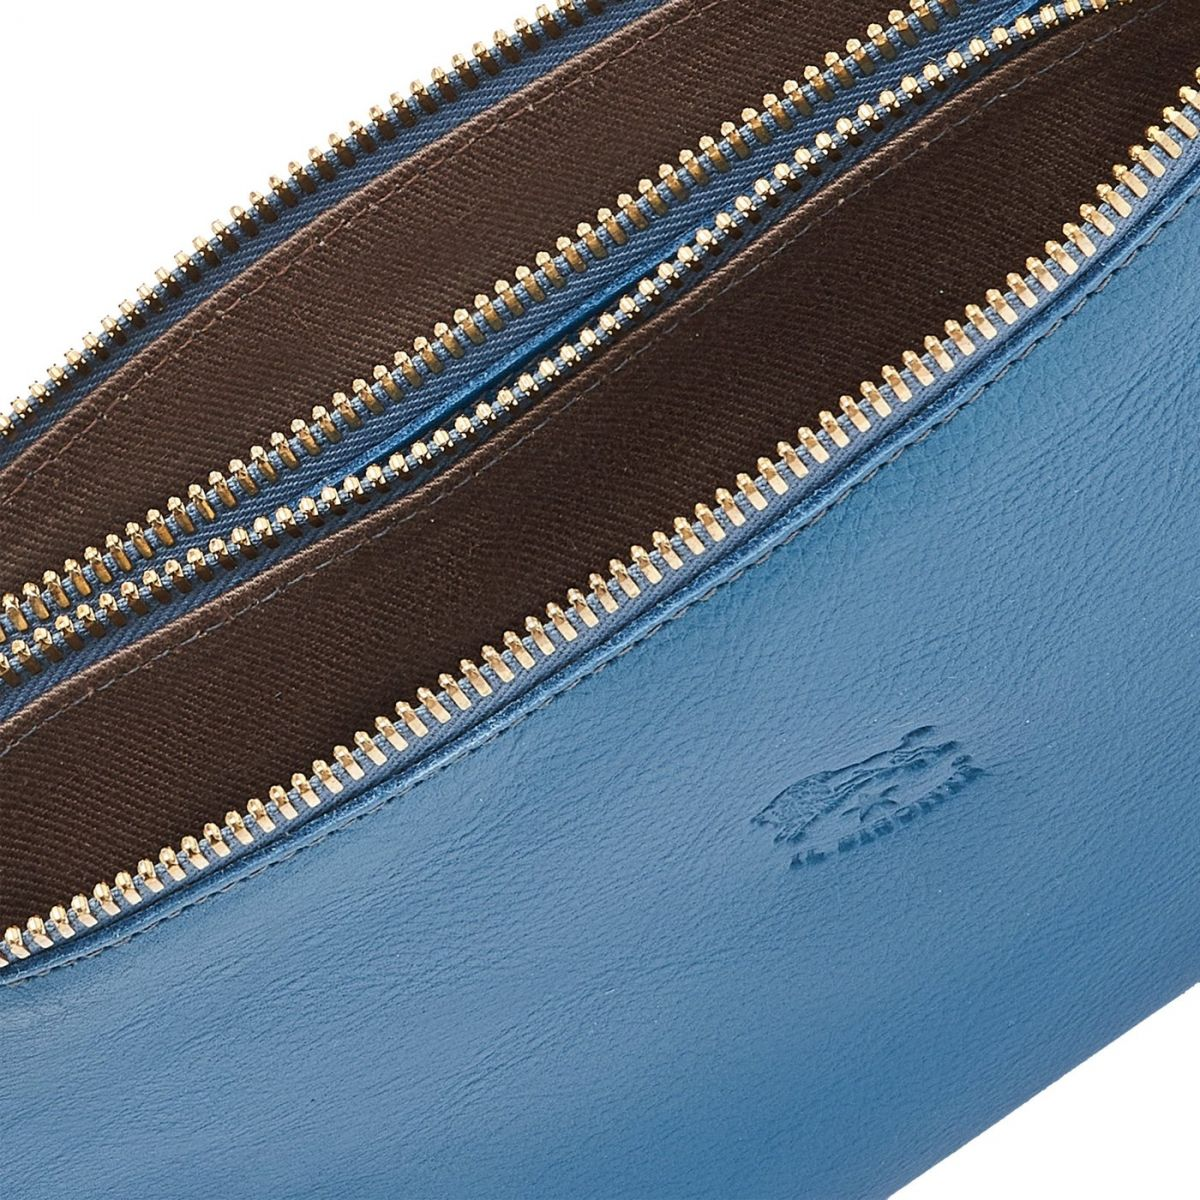 Giulia - Women's Clutch Bag in Cowhide Leather color Blue Teal - Talamone line BCL022   Details